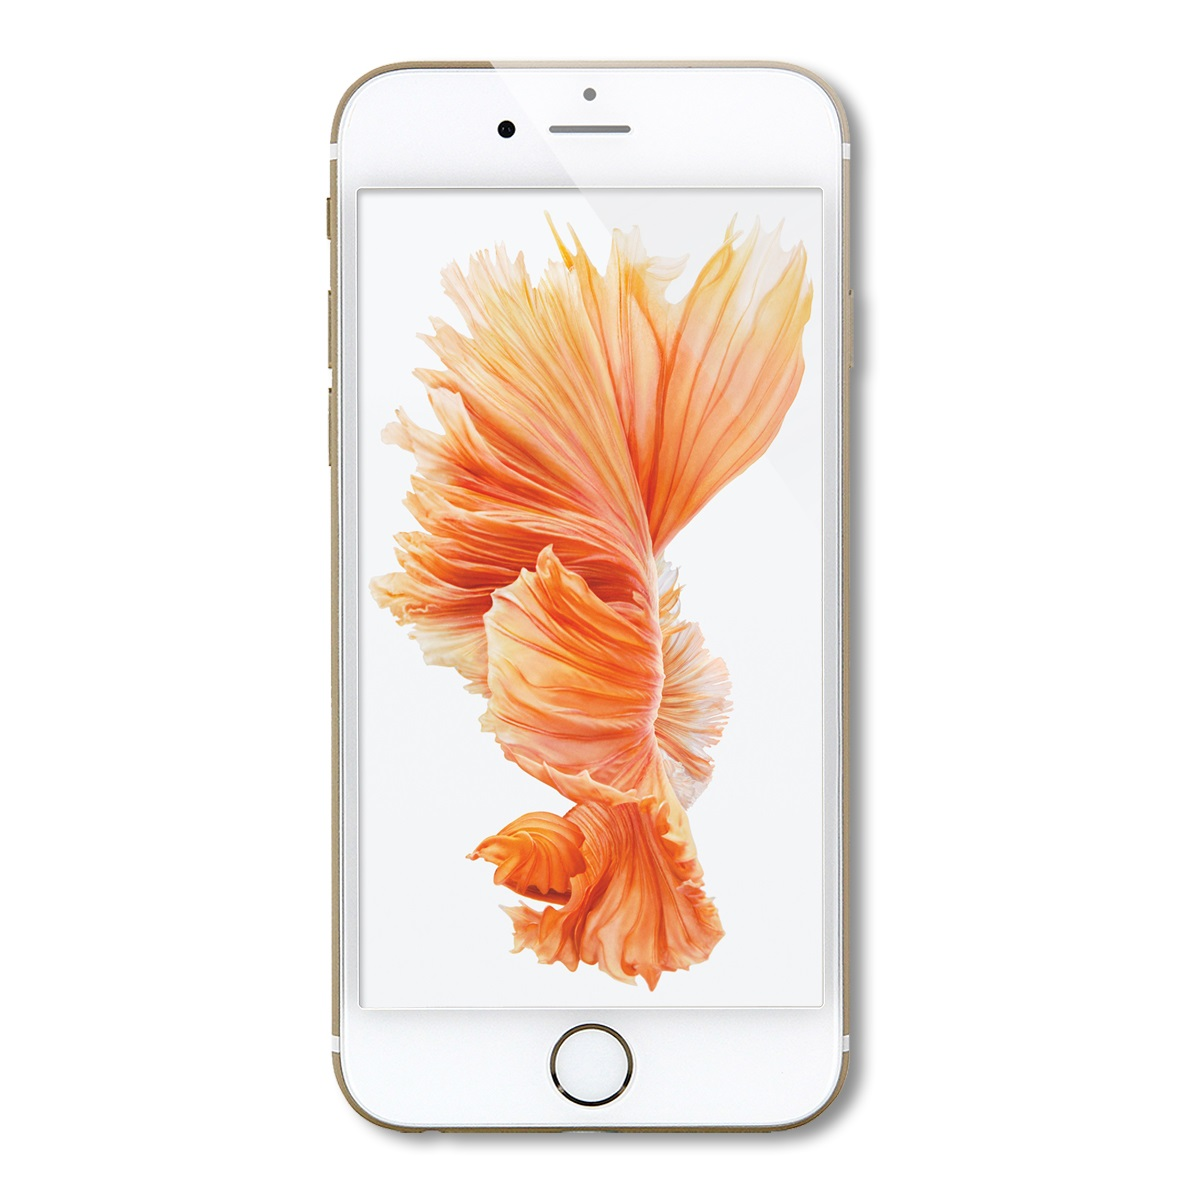 16gb Silvers: Apple IPhone 6S Smartphone 16GB Unlocked Cell Phone A1688